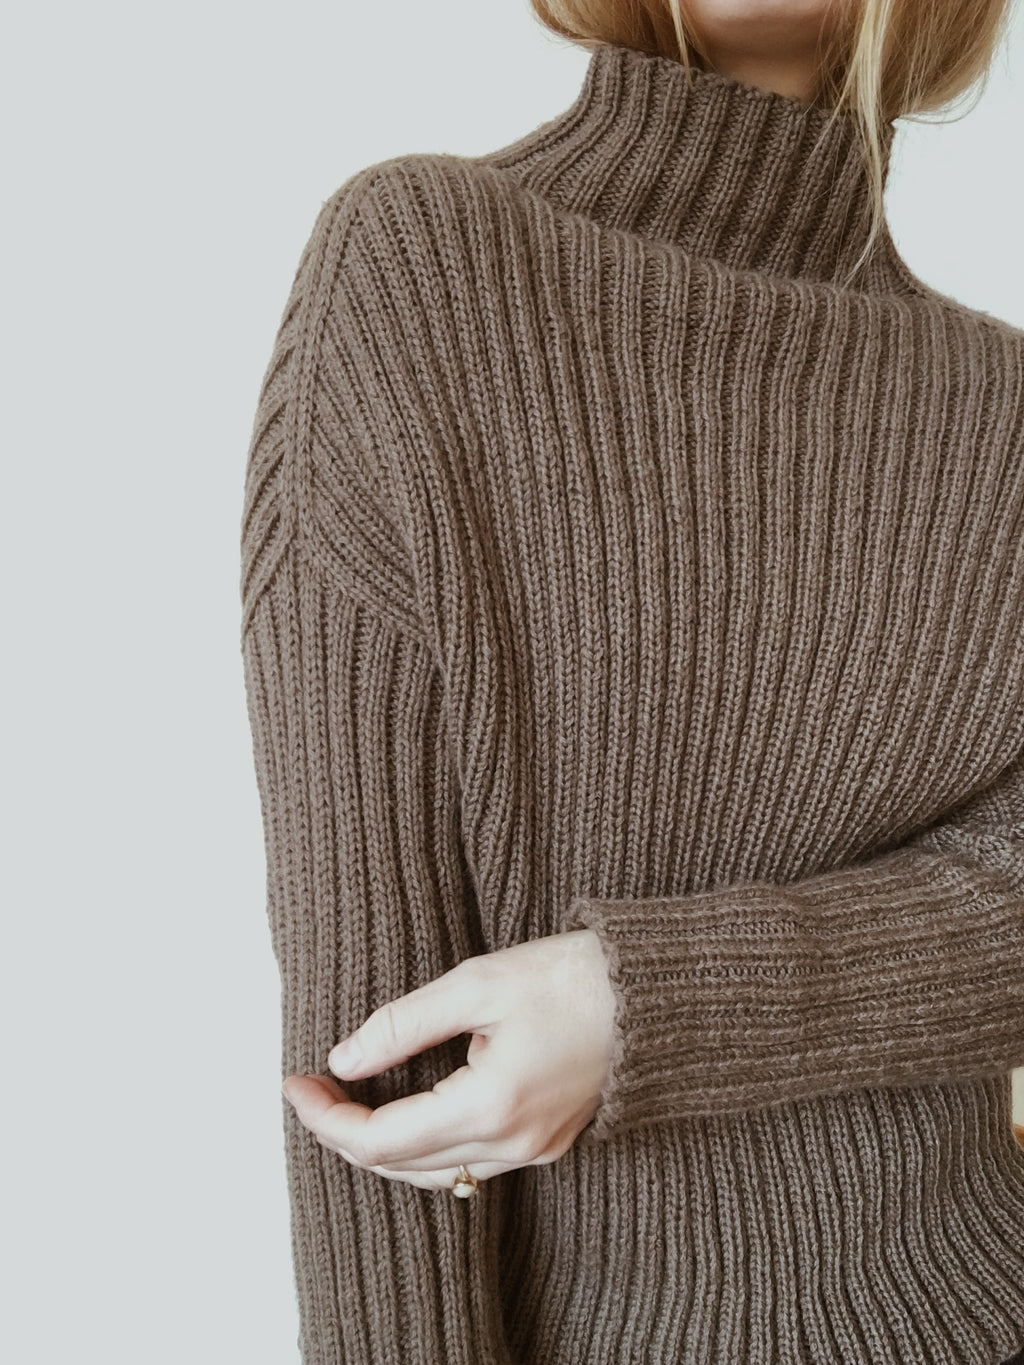 Sweater No. 8 - SE